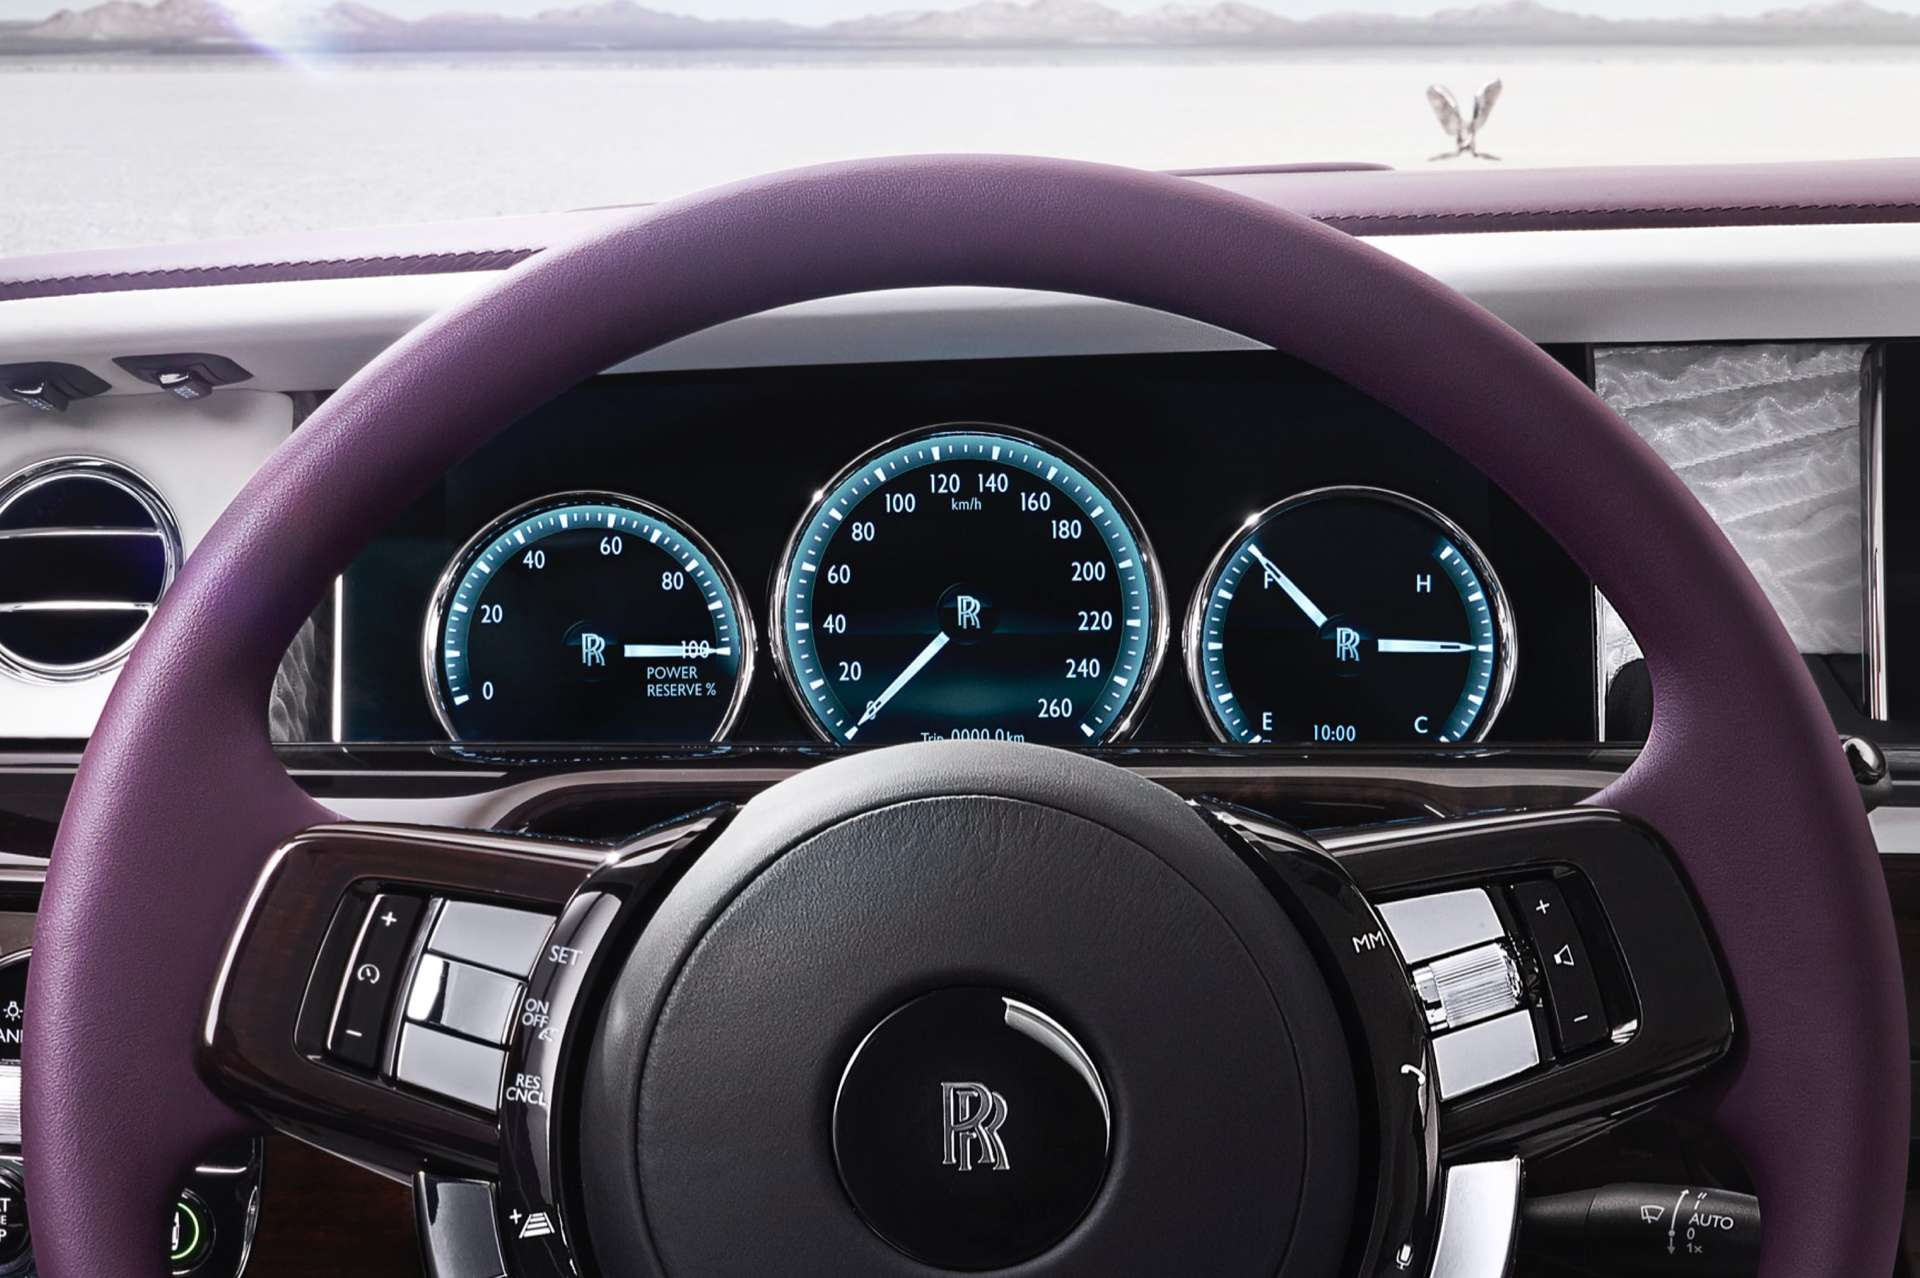 Steering wheel of the Phantom Extended Wheelbase